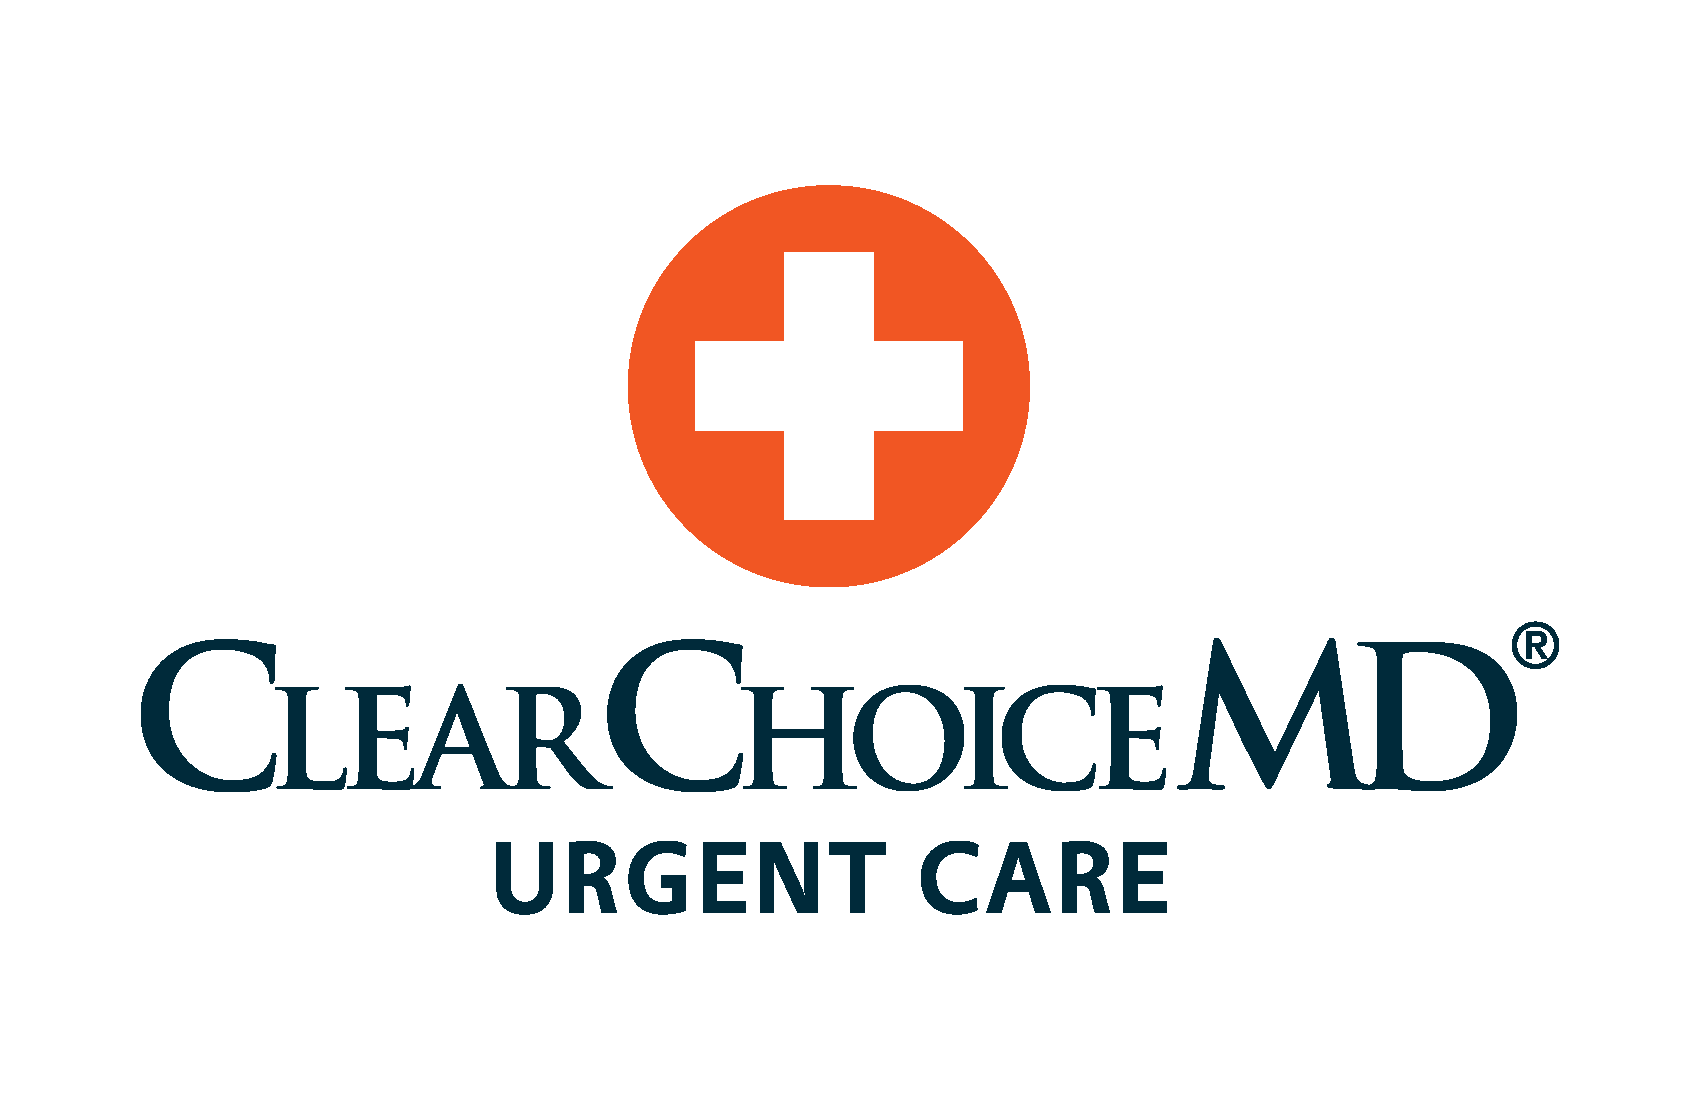 ClearChoiceMD Urgent Care_Blue text.png